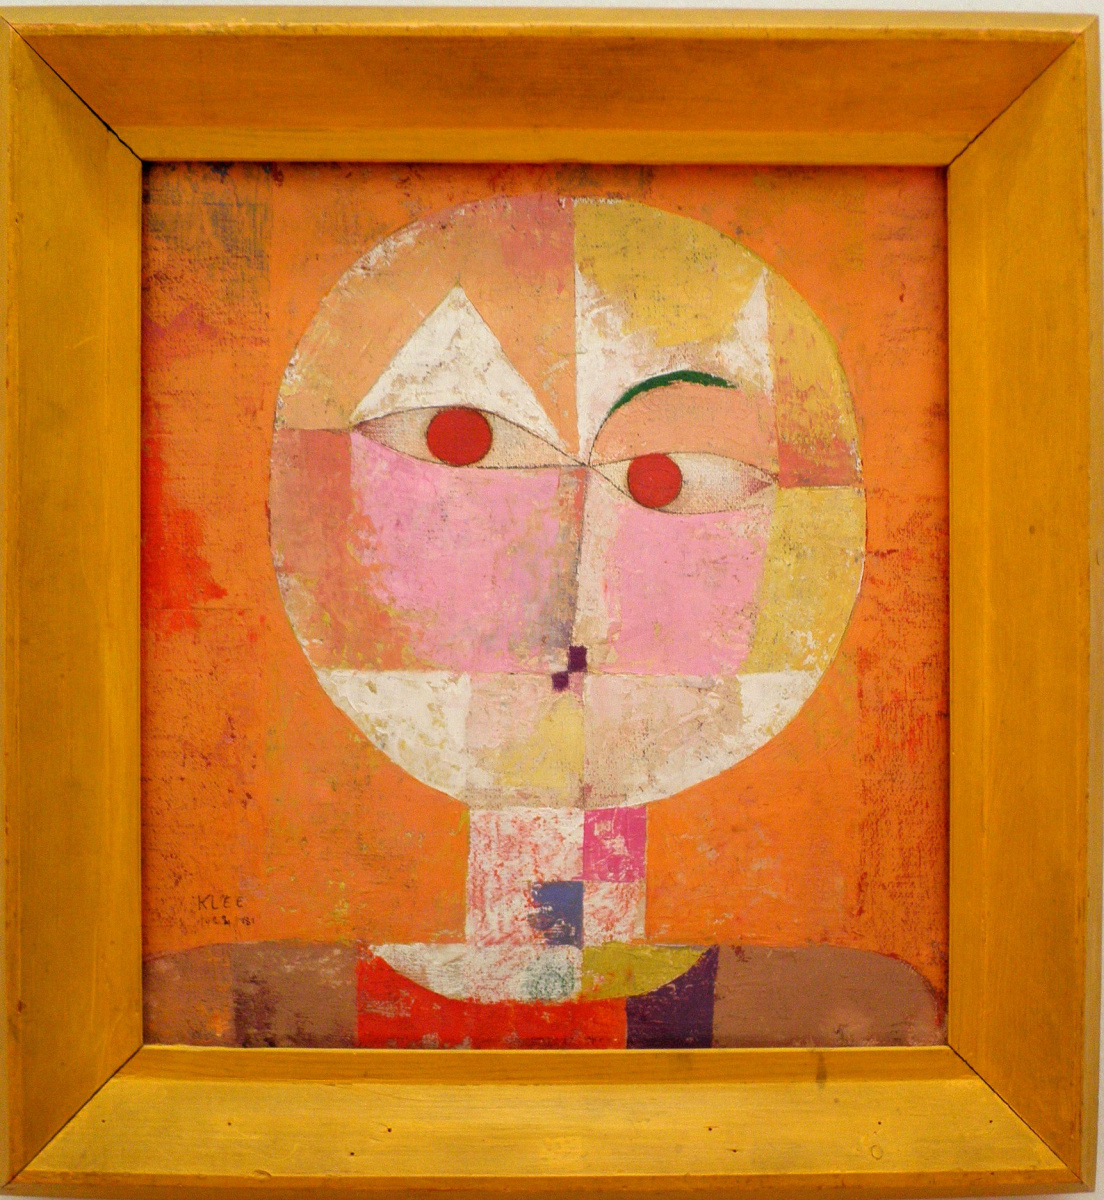 paul klee View paul klee's 3,009 artworks on artnet from exhibitions to biography, news to auction prices, learn about the artist and see available works on paper for sale.